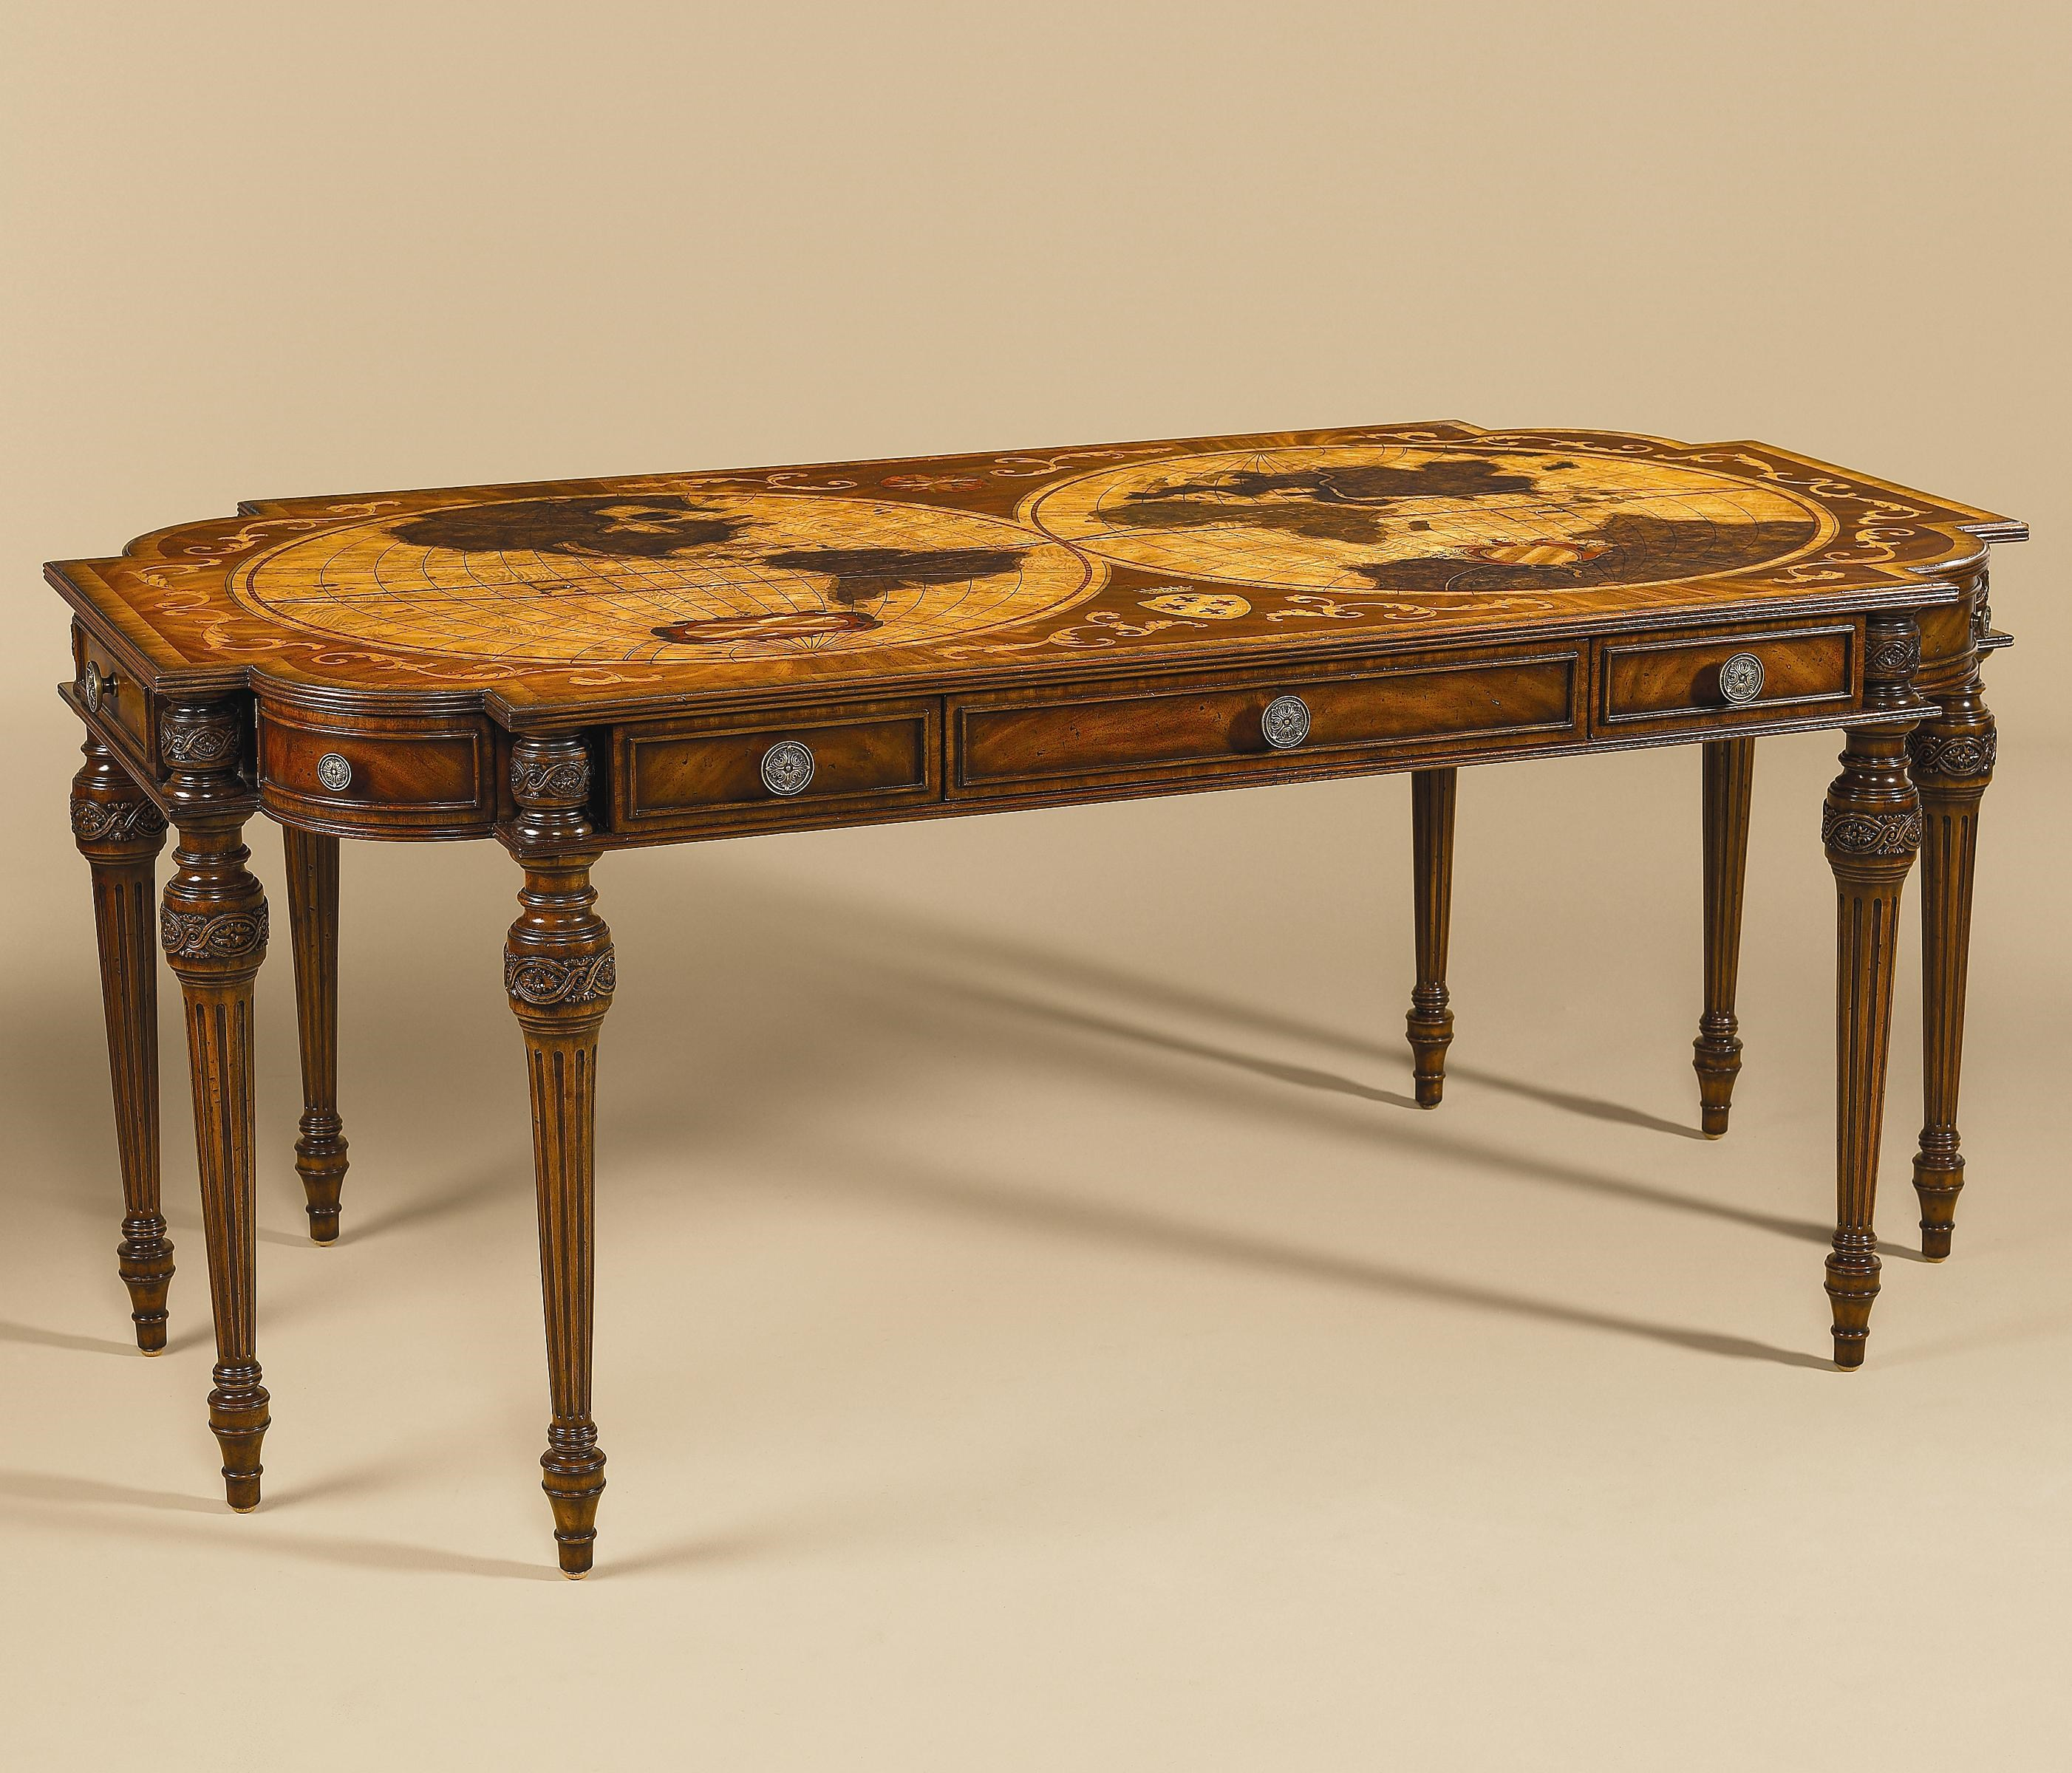 Merveilleux Maitland Smith DesksDesk W/ Intricate Inlaid Marquetry Top ...